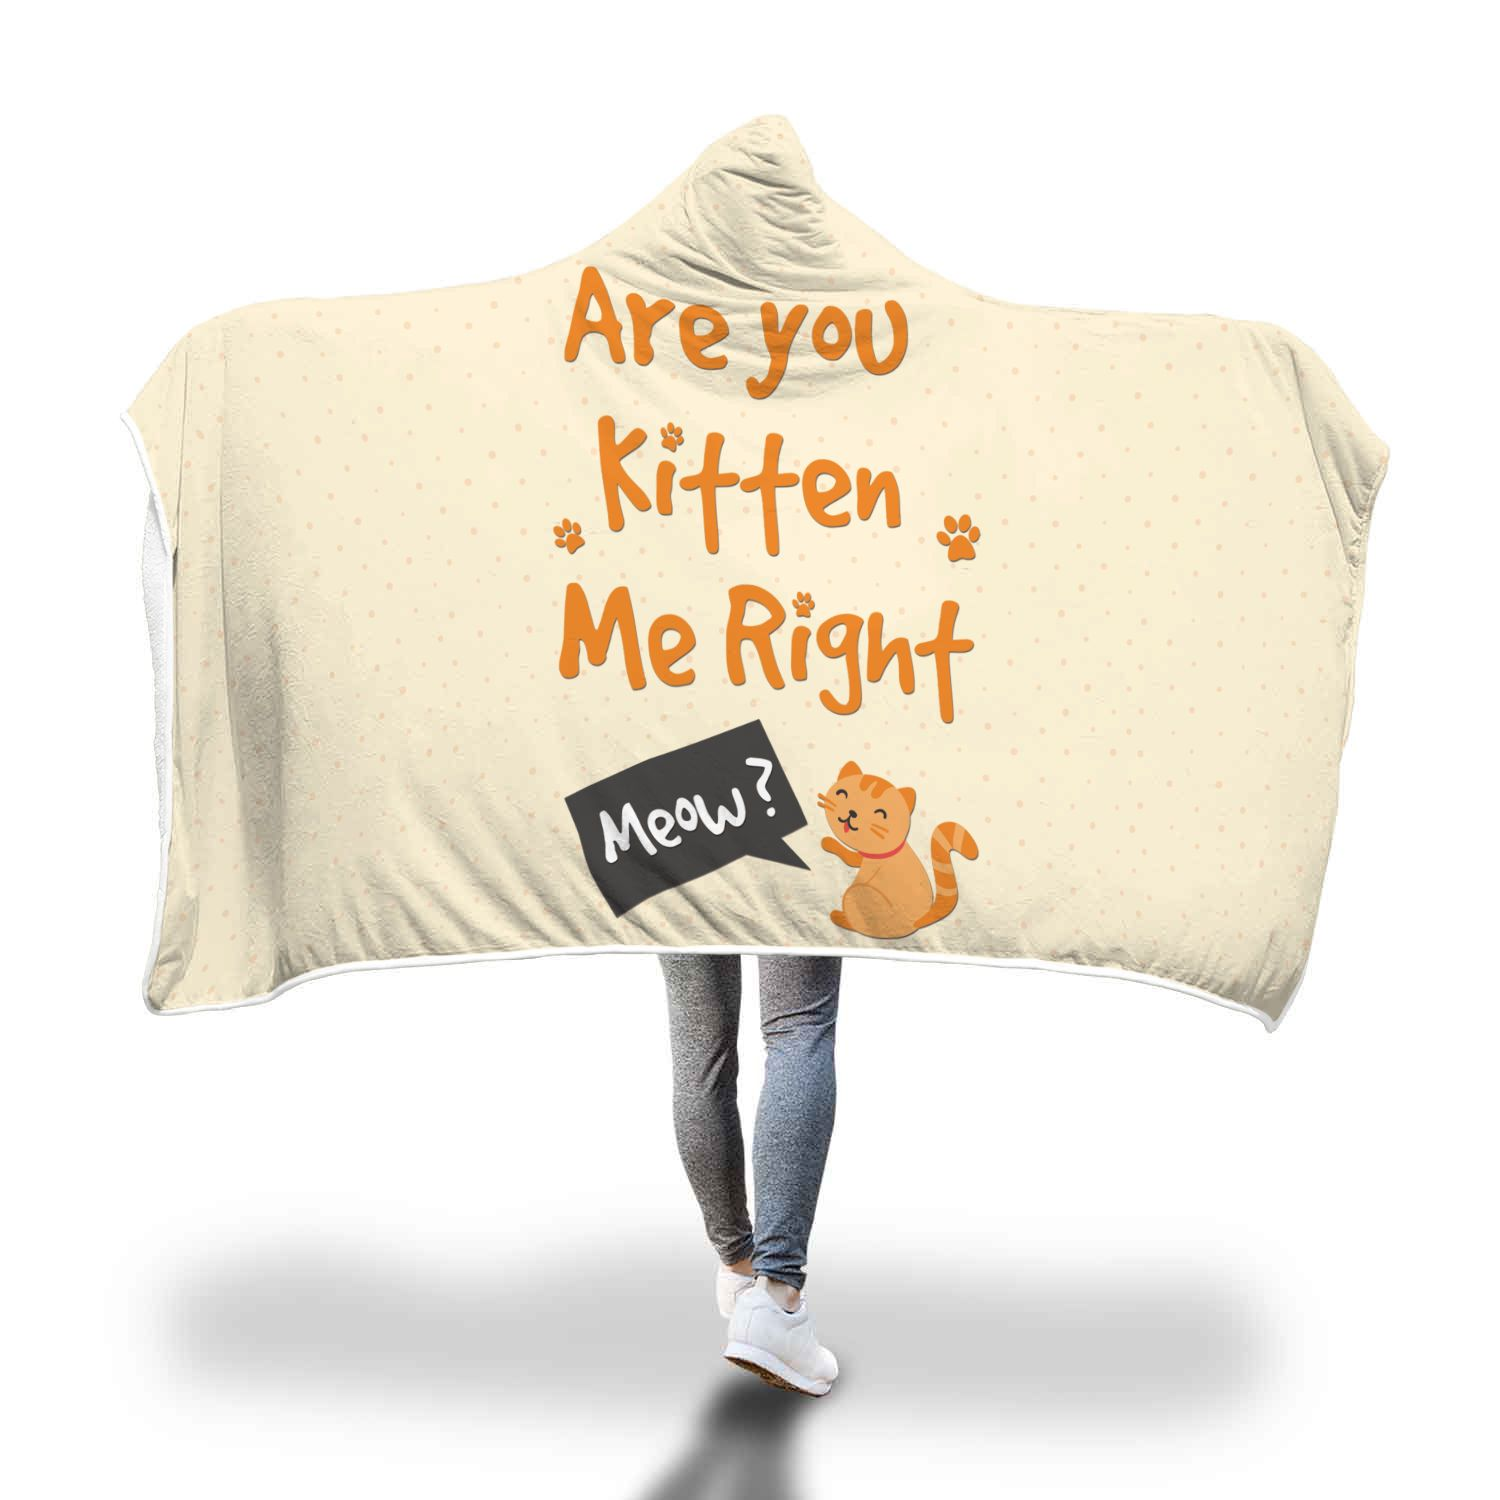 Are You Kitten Me Right Hooded Blanket Hoodie Blanket Hooded Blanket Right Meow